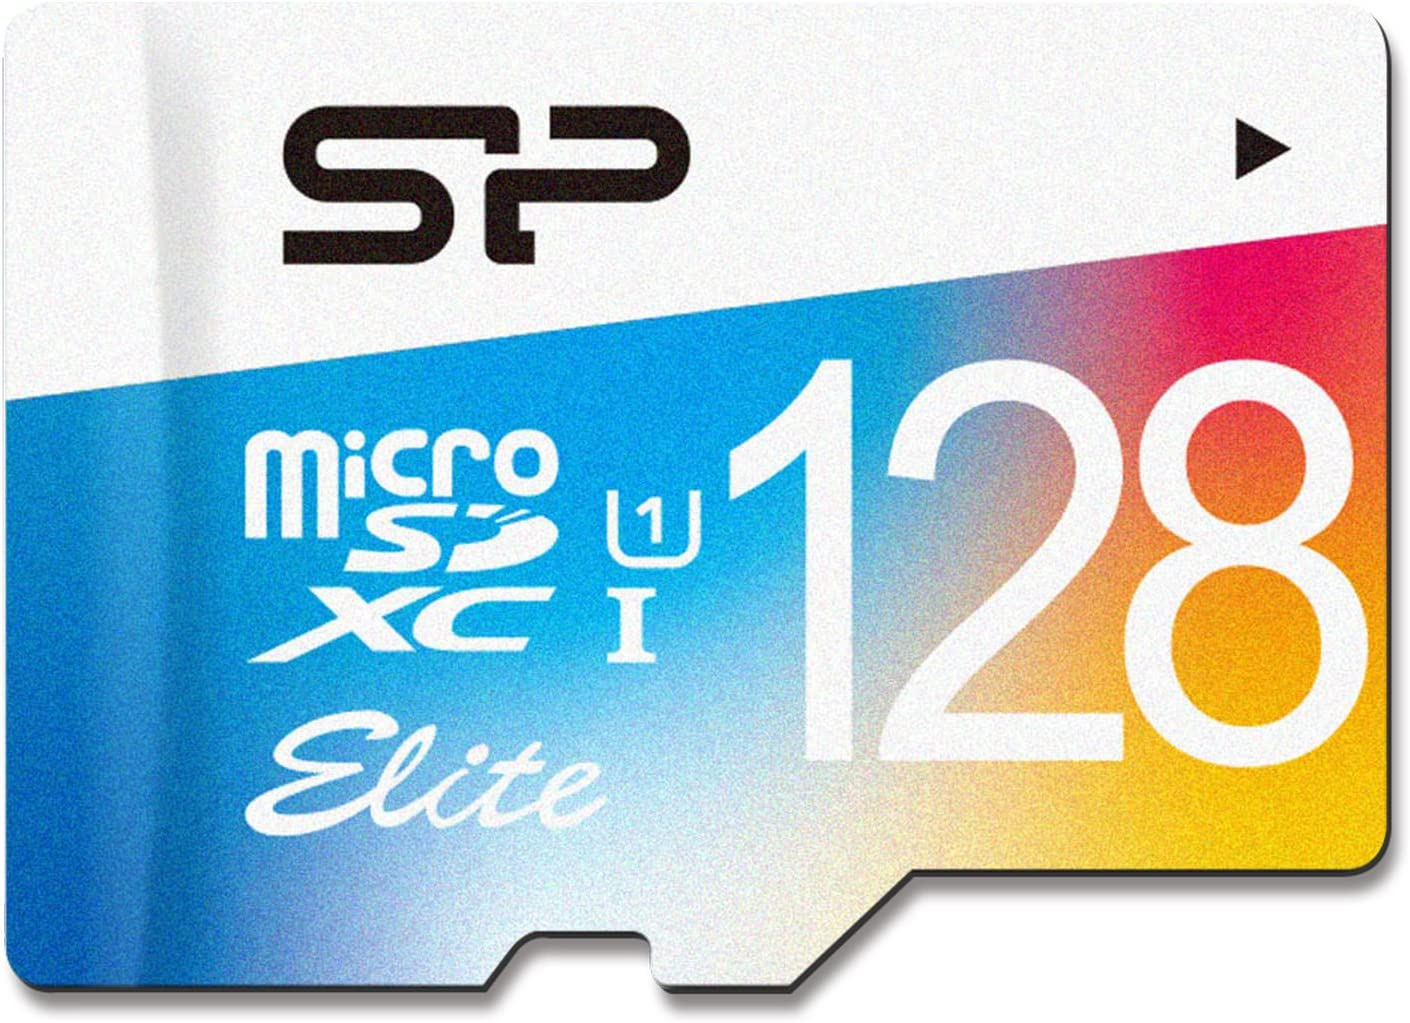 Silicon Power 128GB MicroSDXC UHS-1 Class10, Elite Flash Memory Card with Adapter